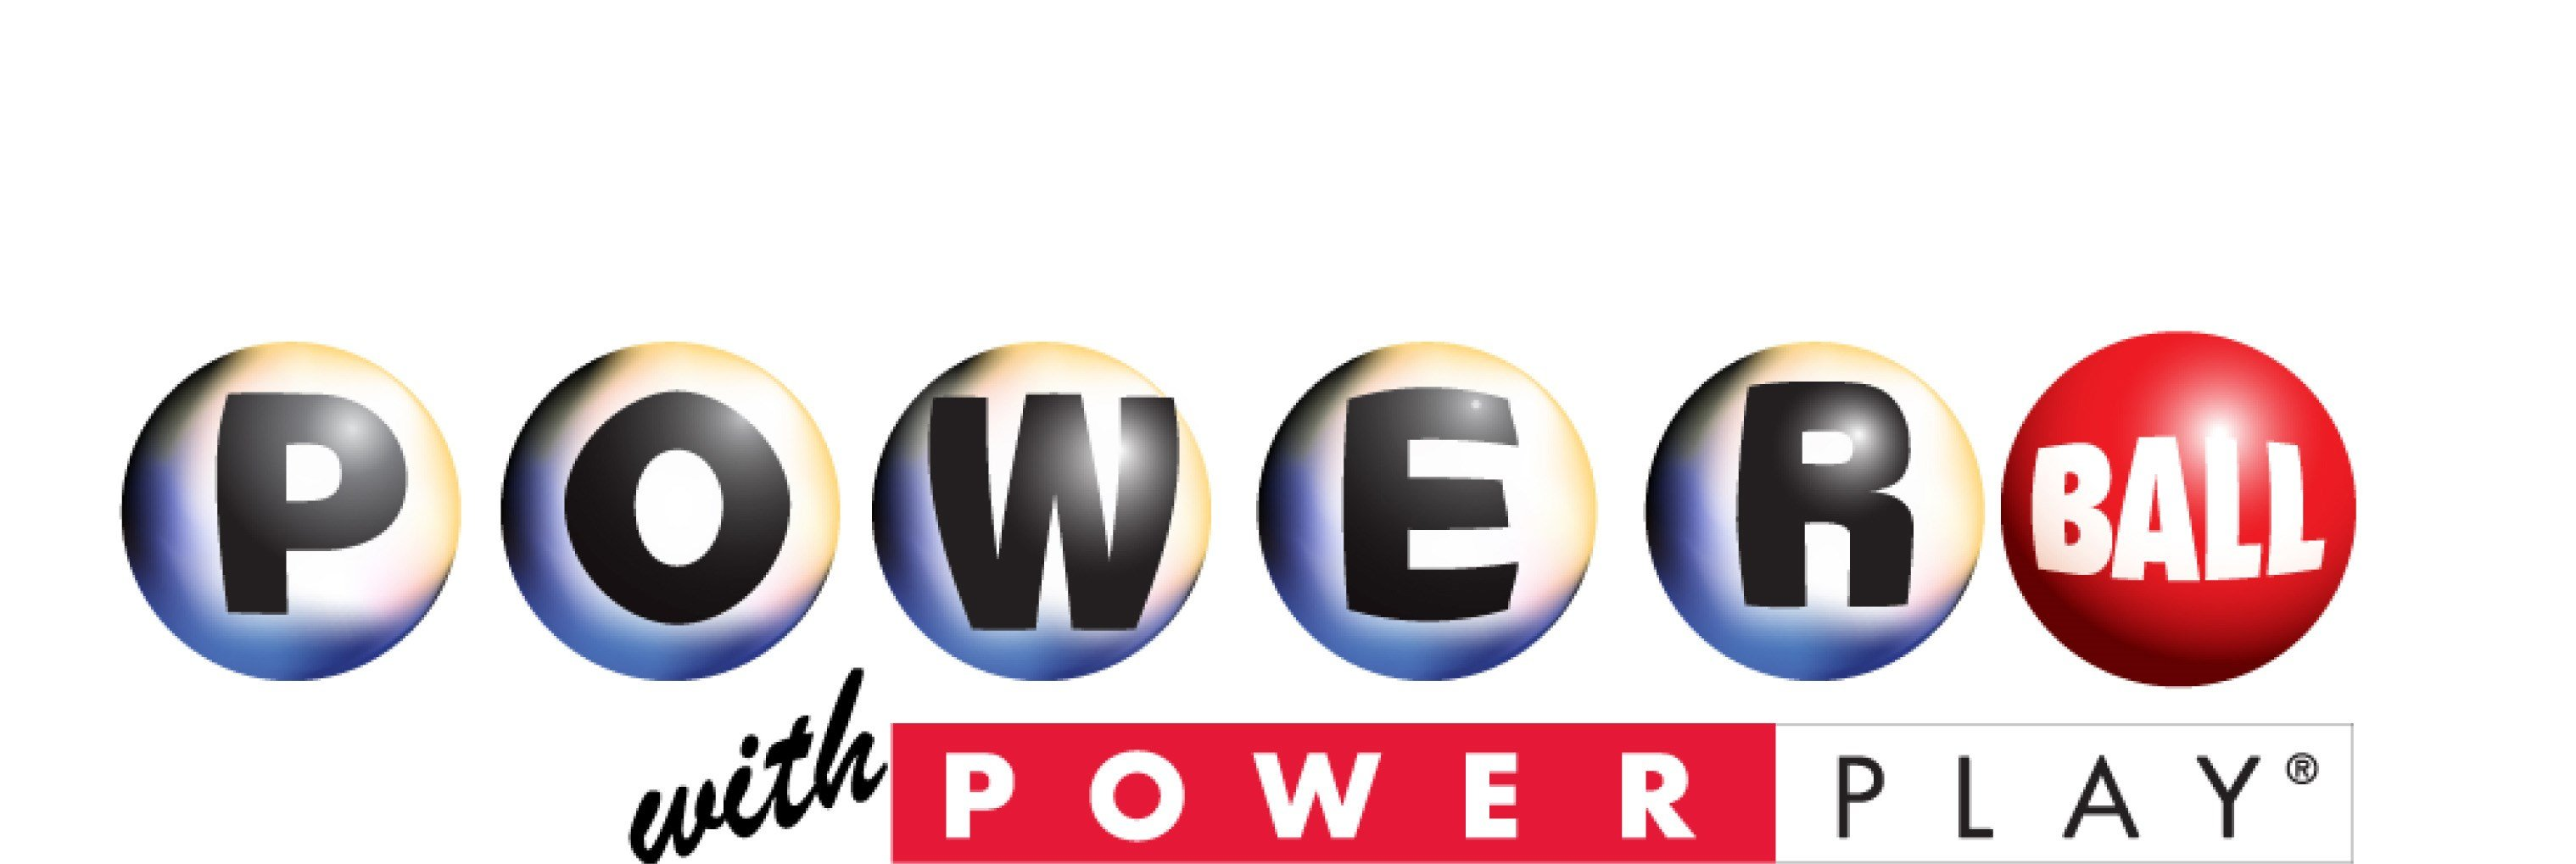 Powerball; Source: WFXG